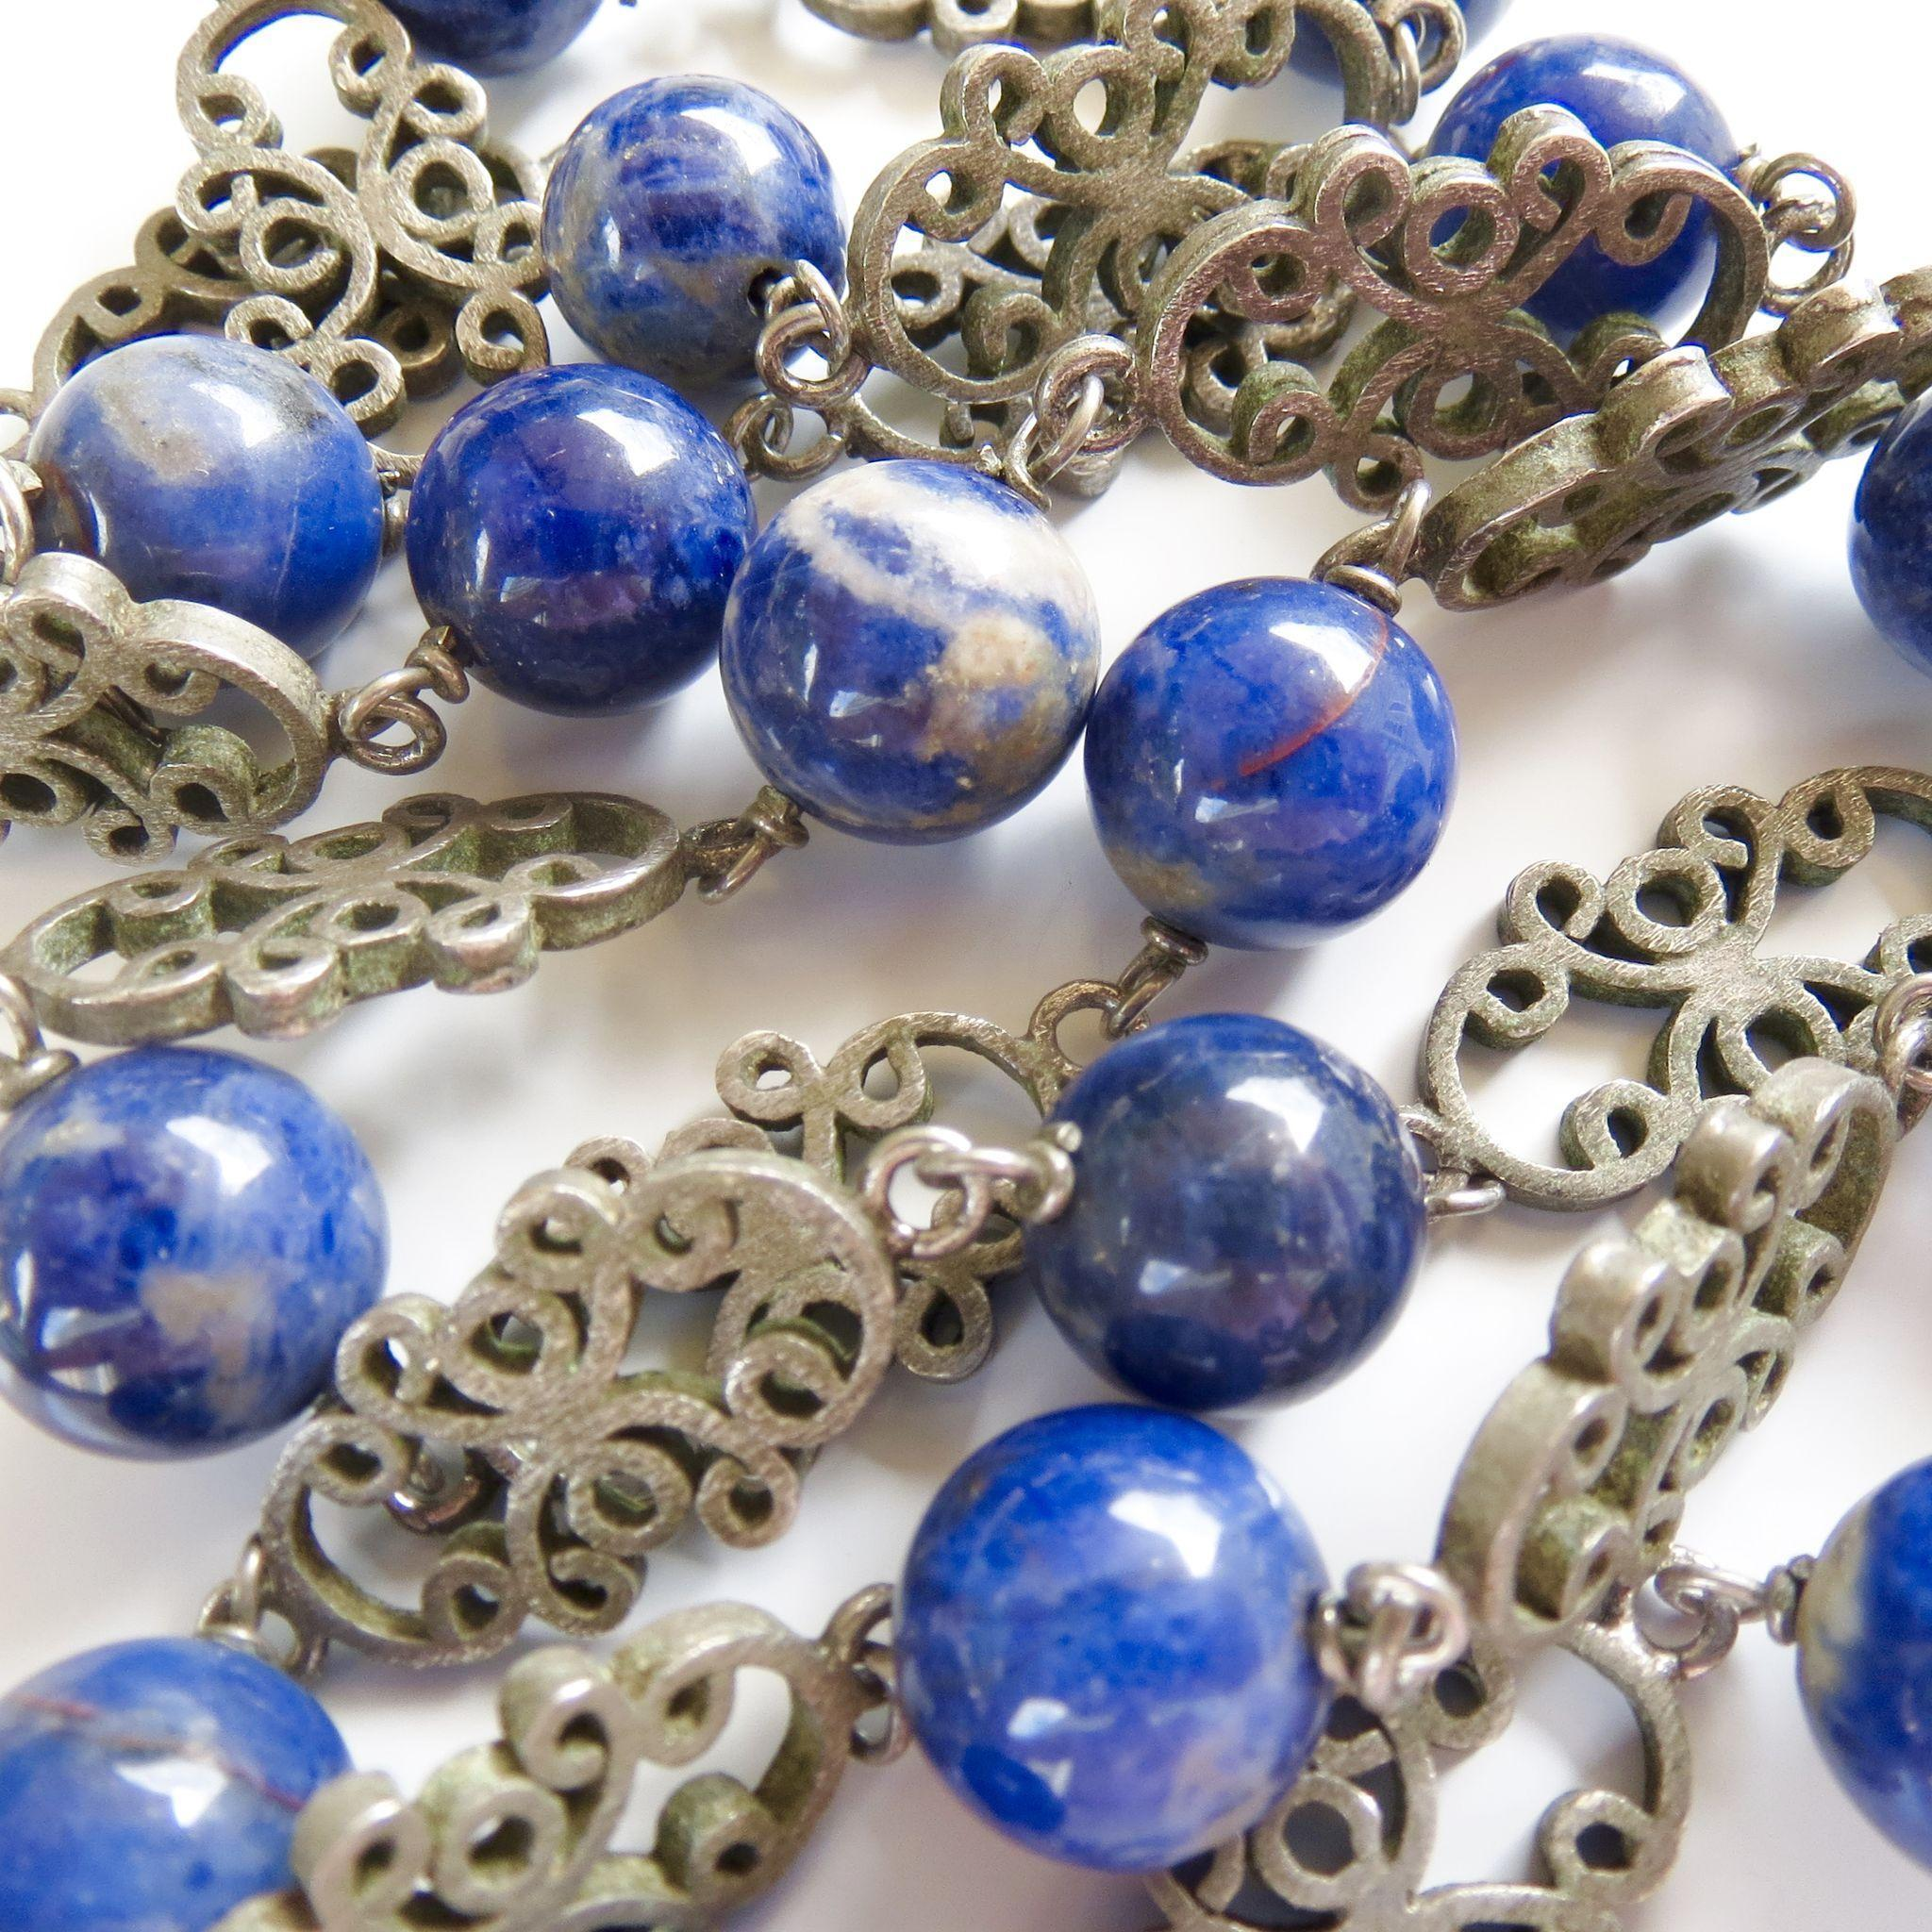 Antique Chinese Export 950 Silver and Sodalite Necklace - Beautiful hand-made!